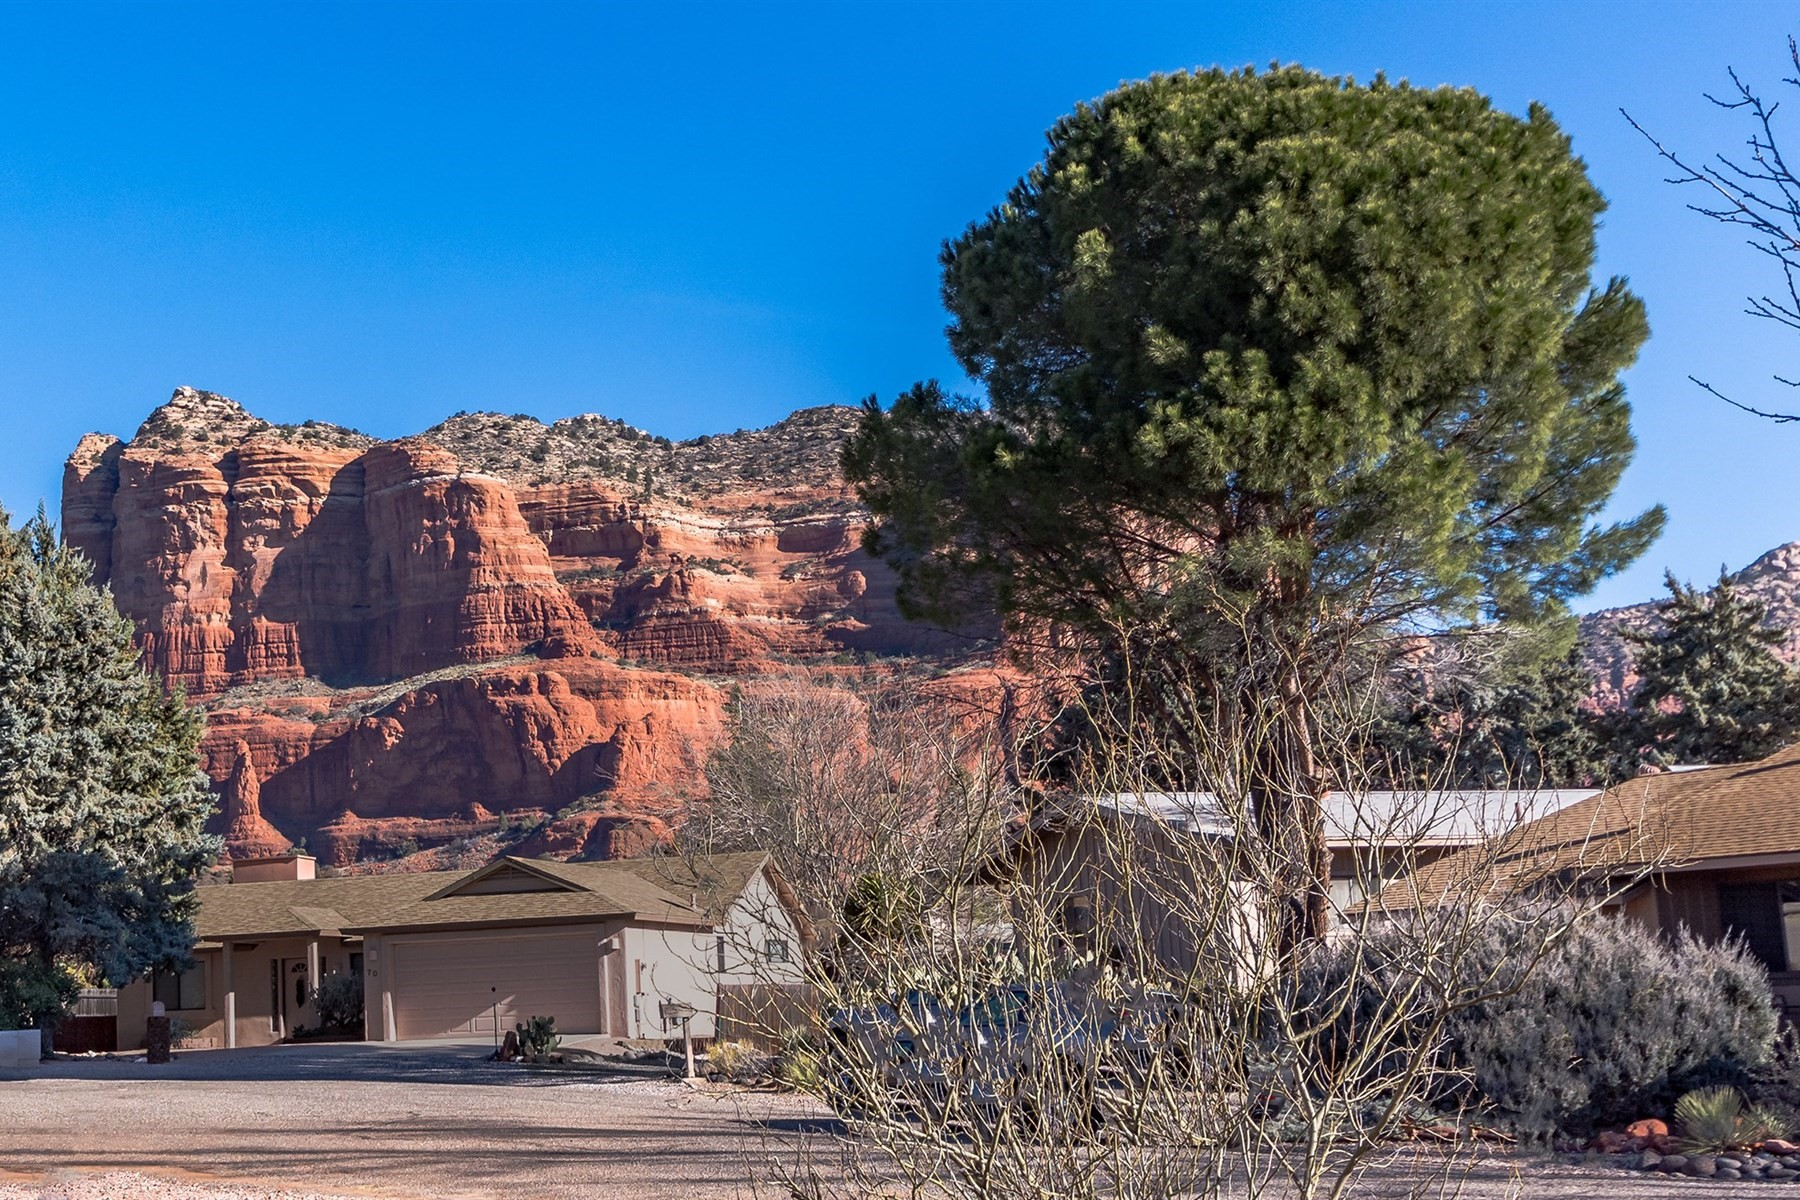 Single Family Home for Sale at Modern and Meticulously kept home in Sedona 45 Supai Drive Sedona, Arizona, 86351 United States